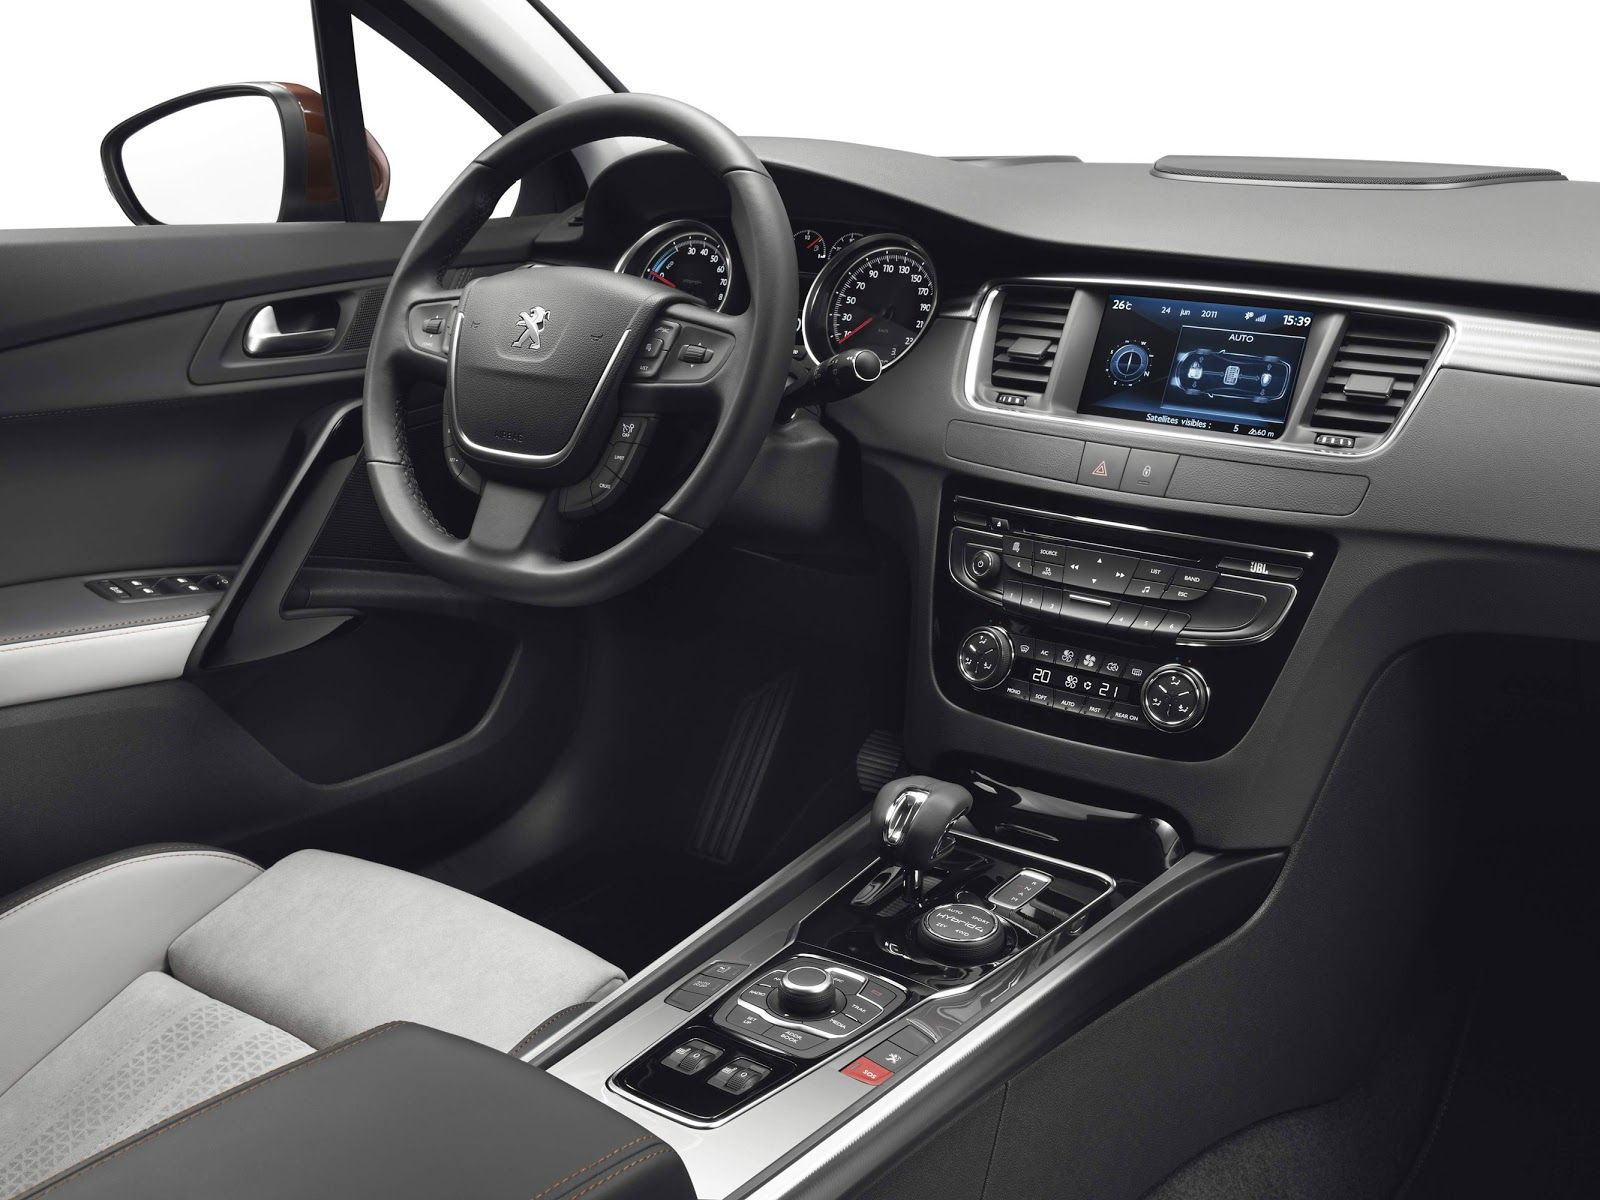 Nuevo peugeot 508 archives cambiosecuencial for Interior peugeot 508